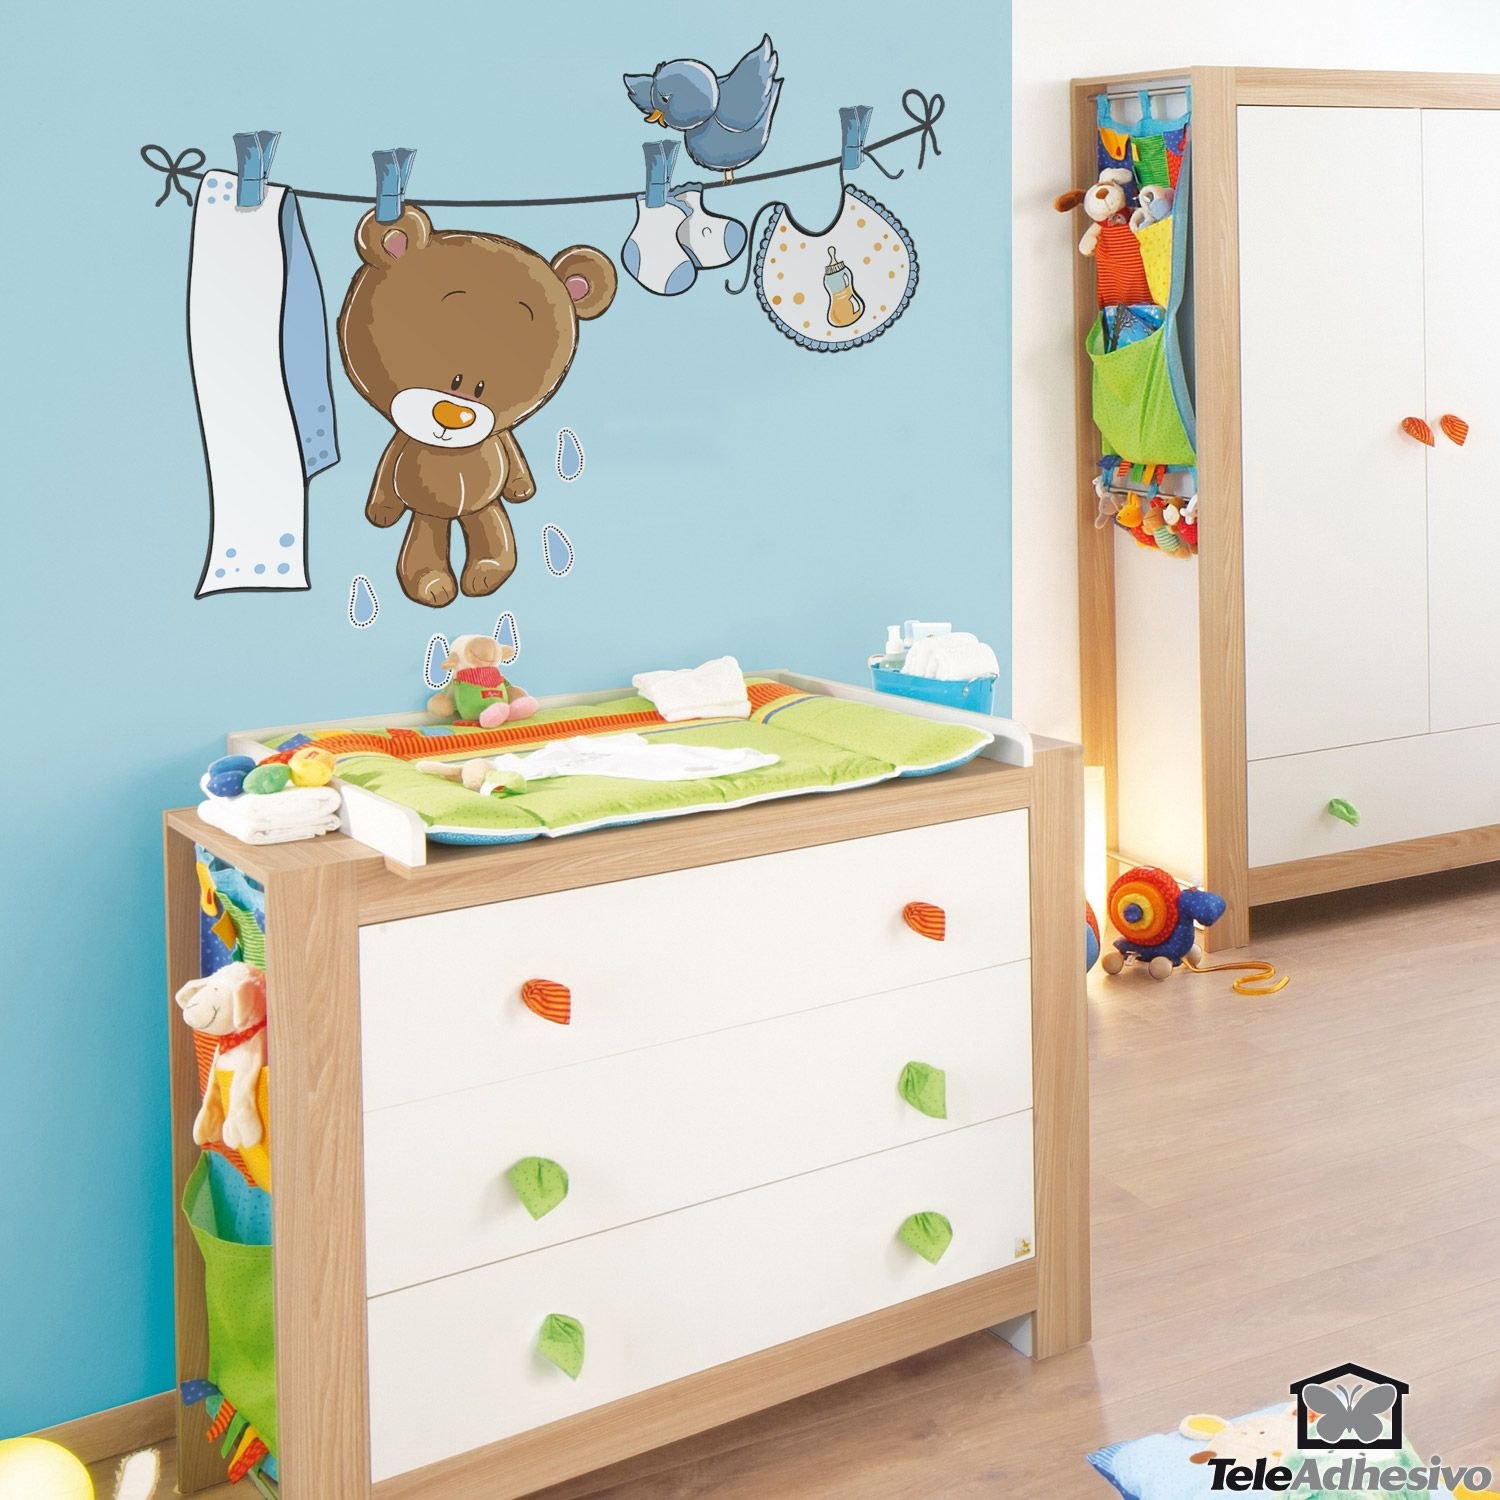 The Kids Clothesline Interesting Adesivi Per Bambini Orso E Uccello Sul Clothesline  Adesivi Per Review